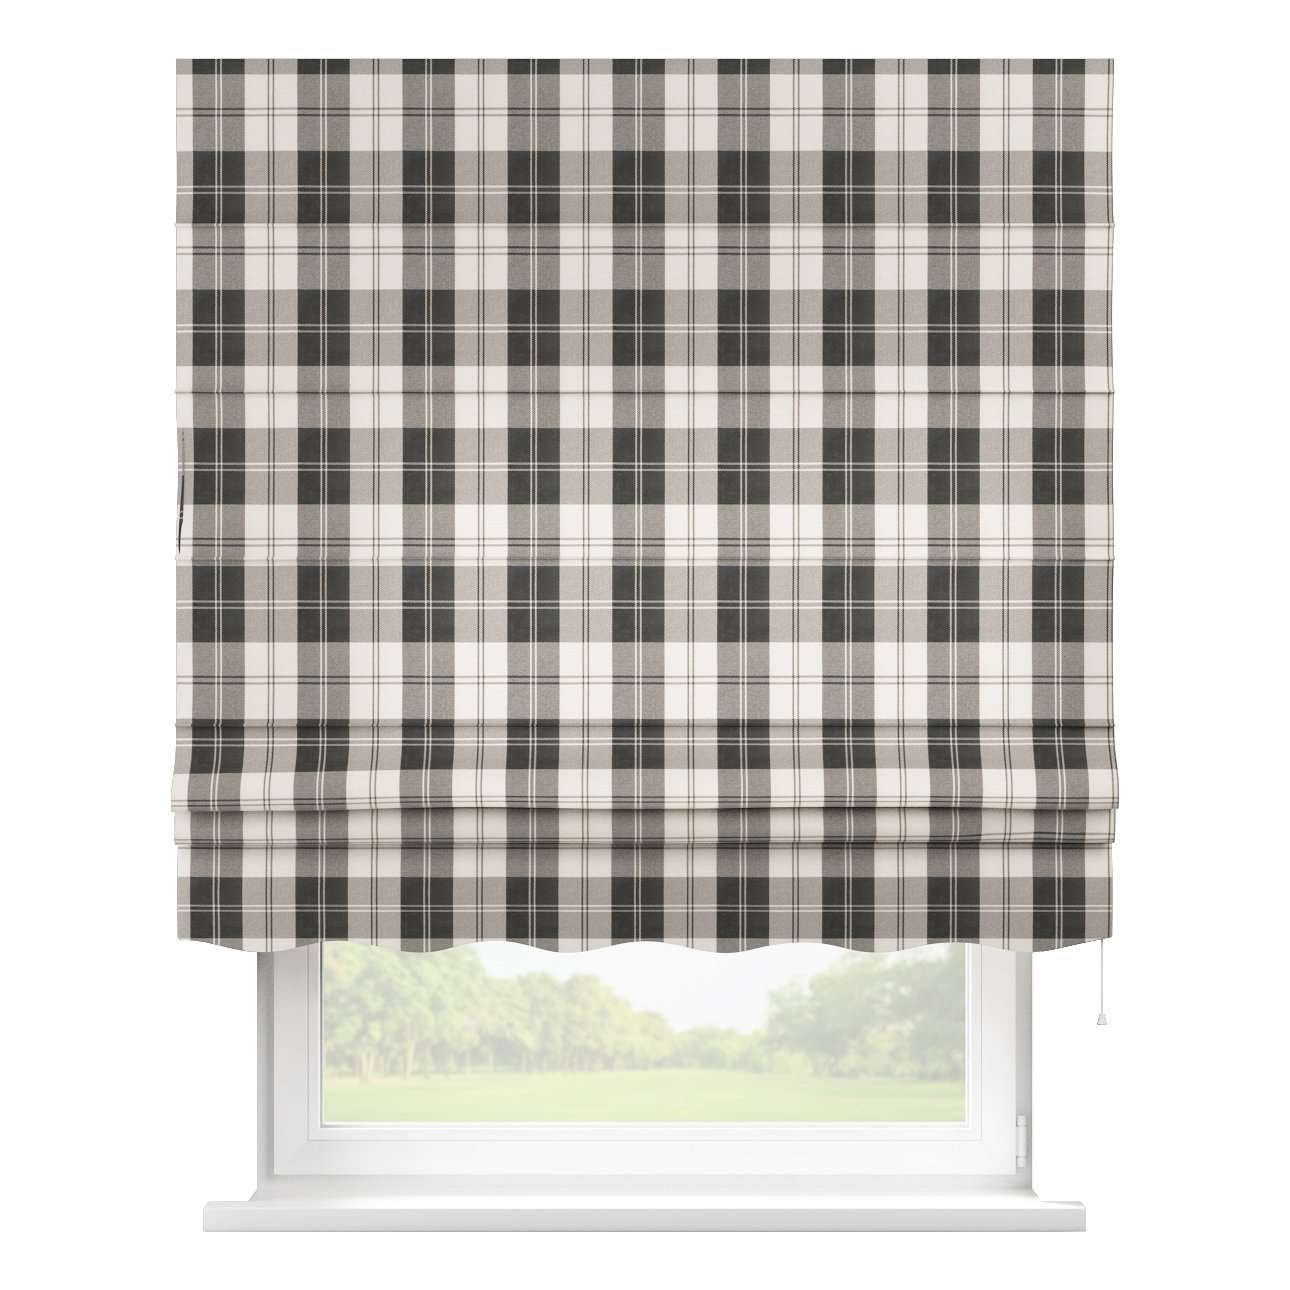 Florence roman blind  80 x 170 cm (31.5 x 67 inch) in collection Edinburgh, fabric: 115-74